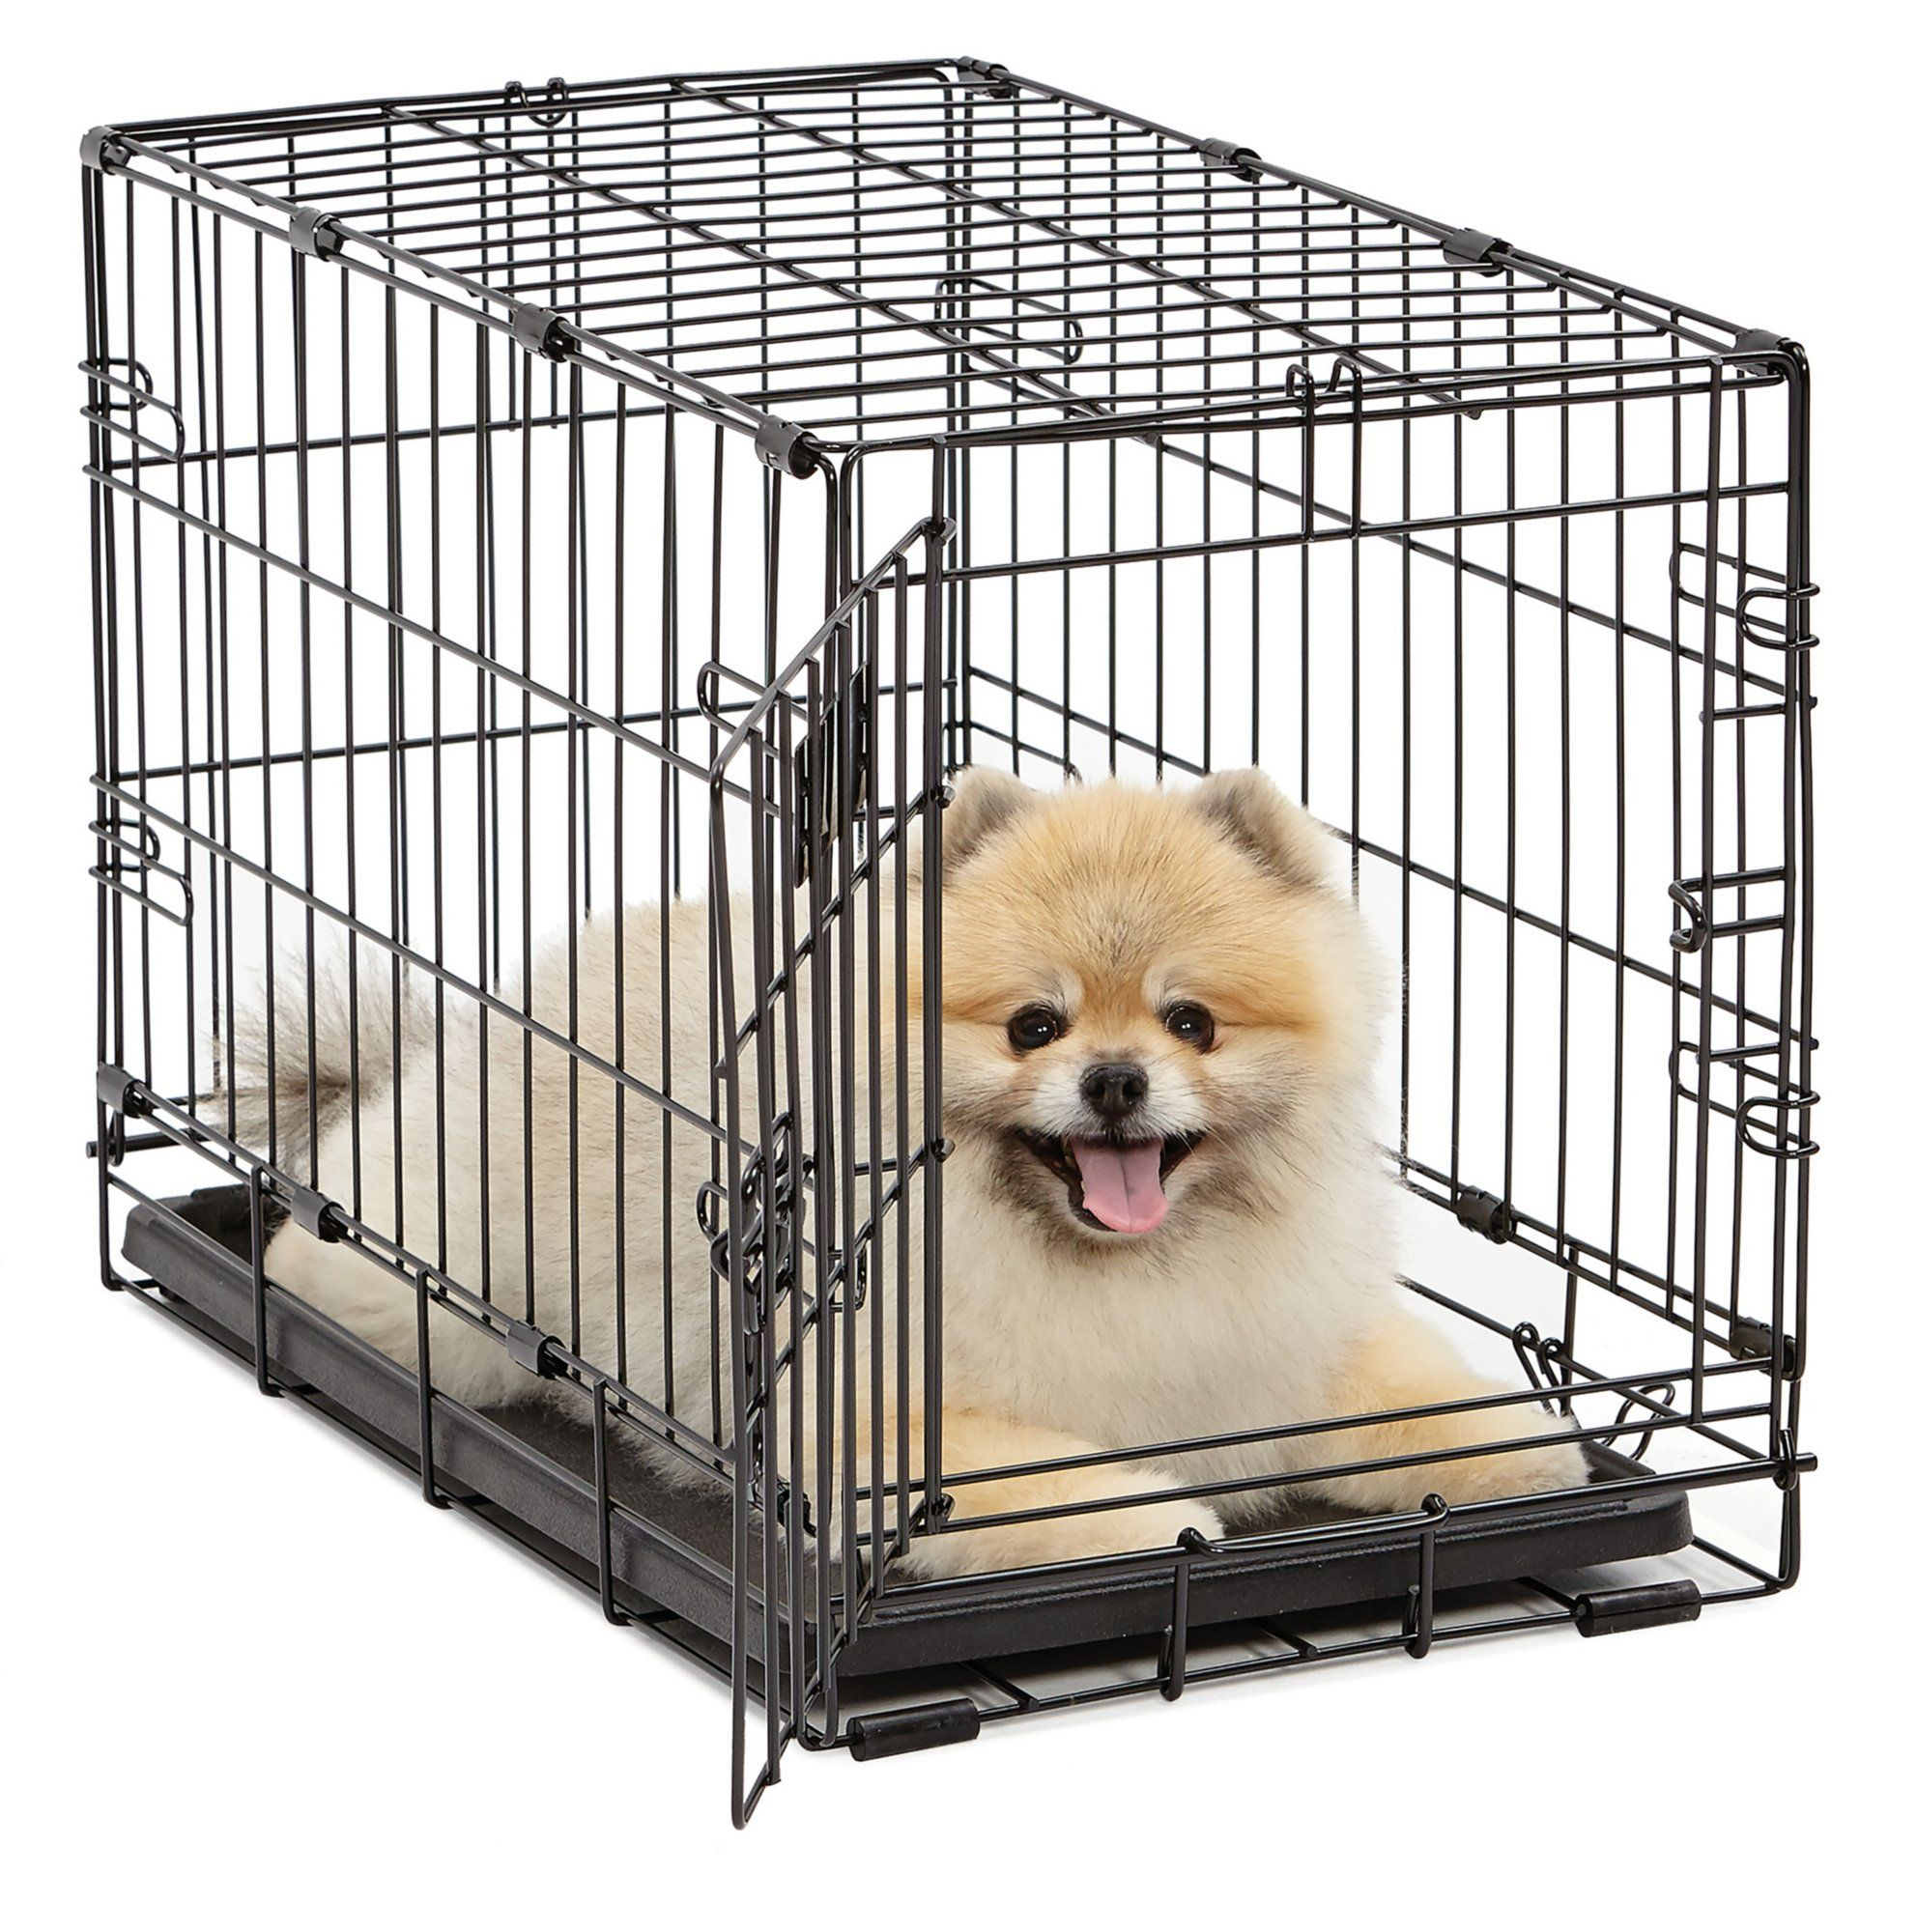 Midwest Icrate Single Door Folding Dog Crate 22 L X 13 W X 16